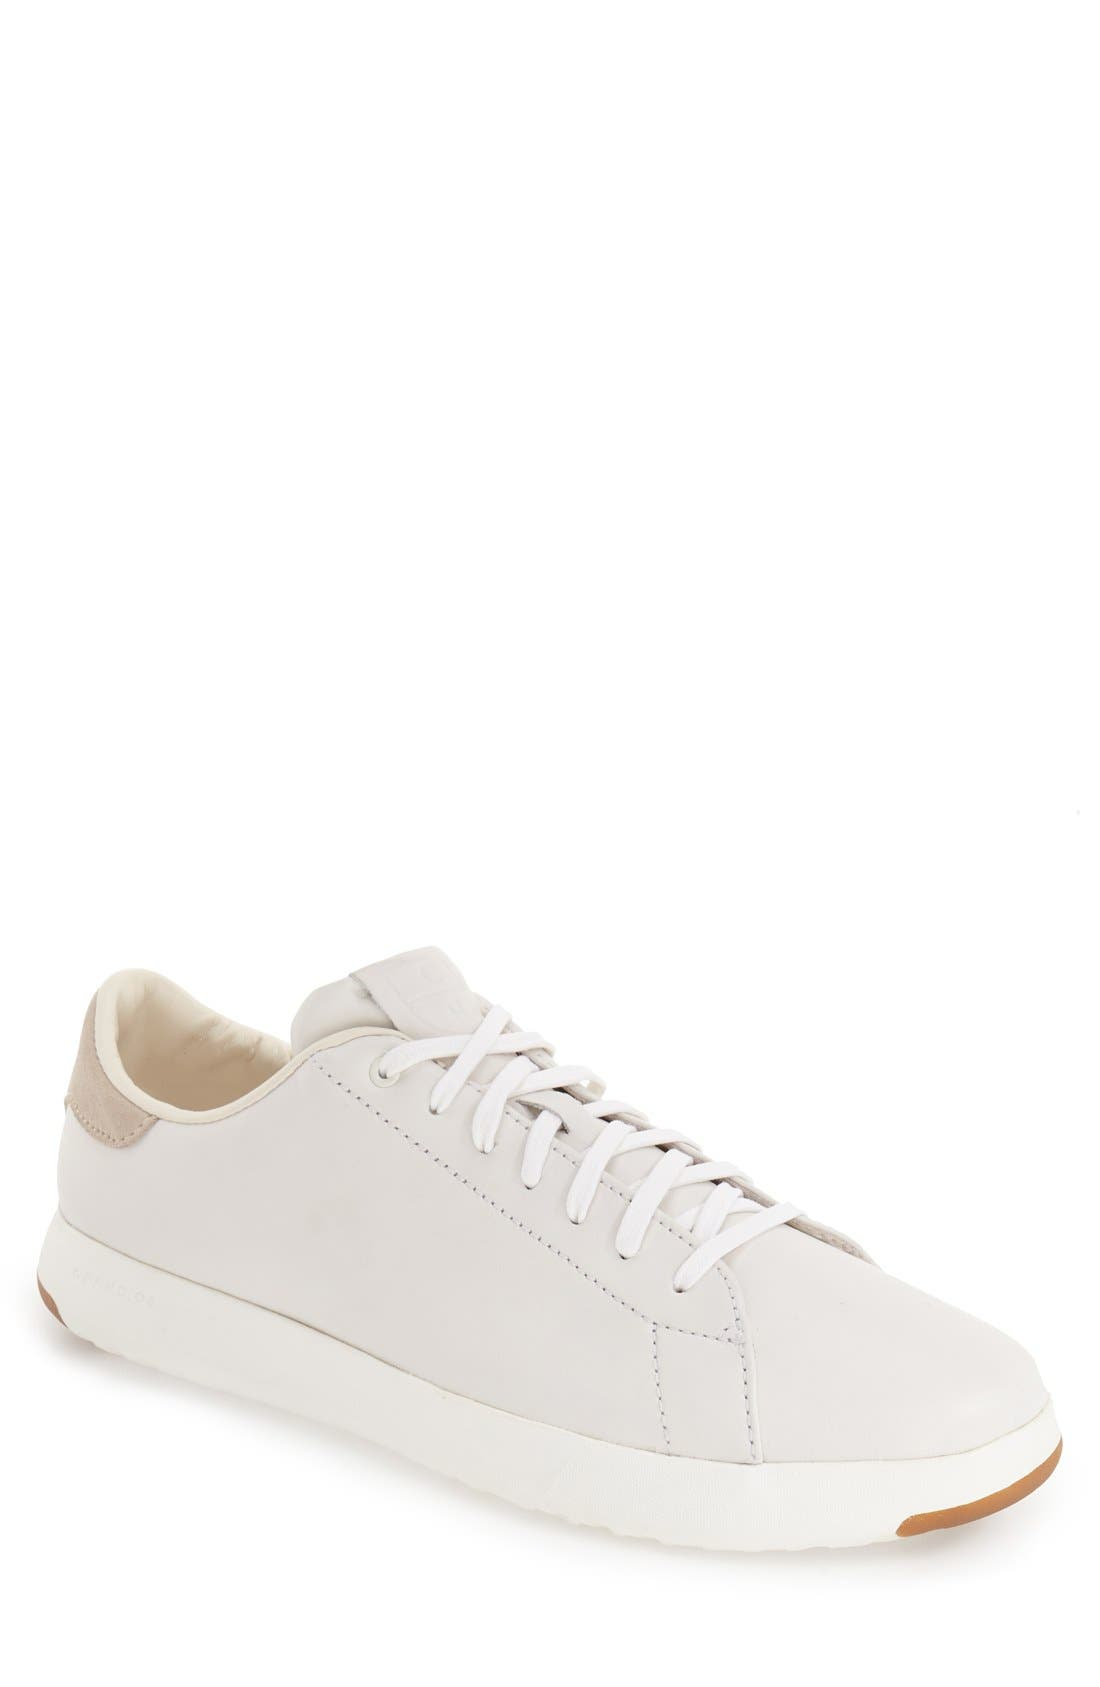 GrandPro Tennis Sneaker,                         Main,                         color, WHITE